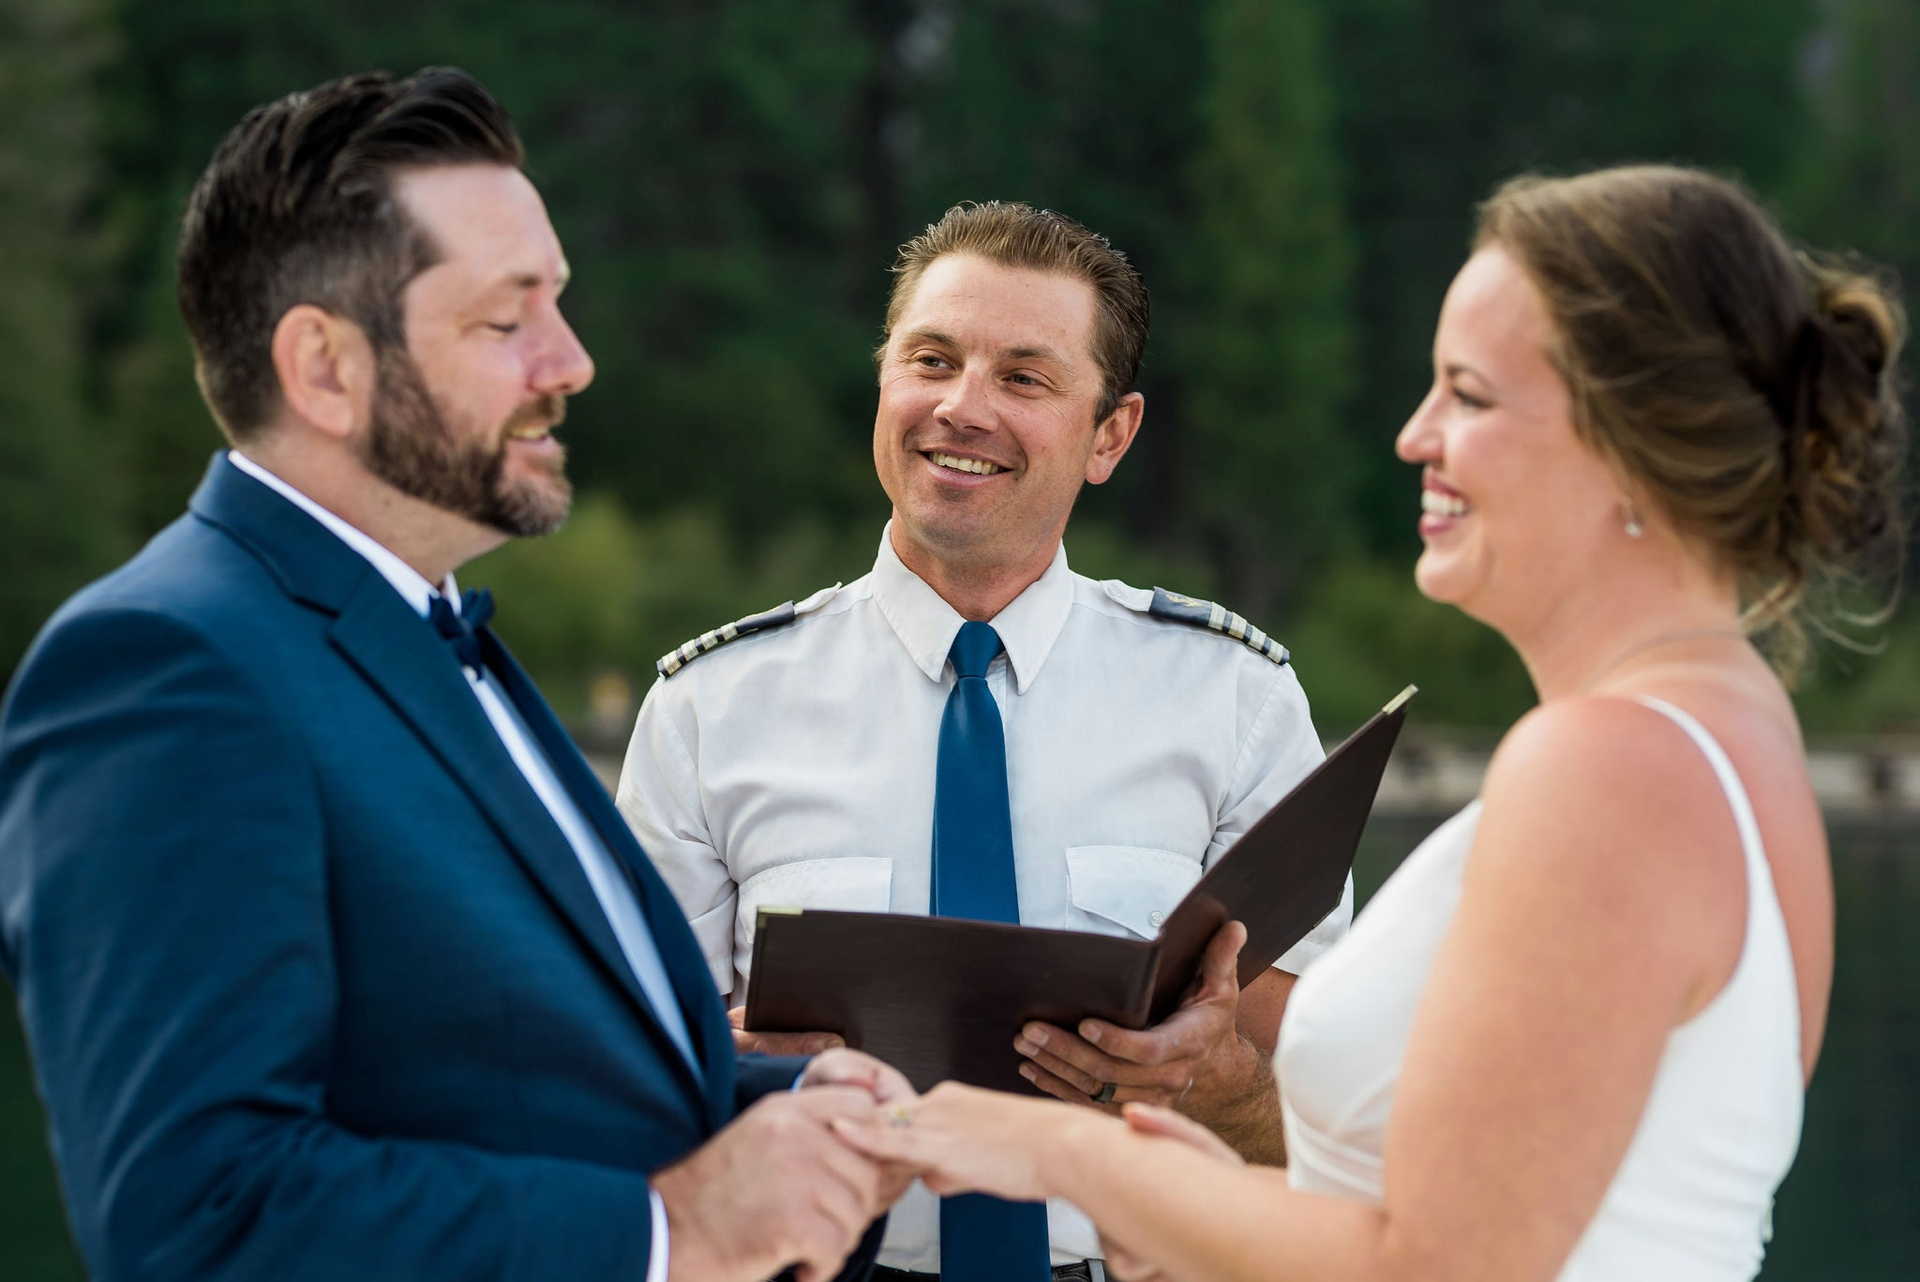 Emerald Bay, Lake Tahoe, CA Wedding Ceremony Pics | Captain Steve looks on while the couple share their elopement vows